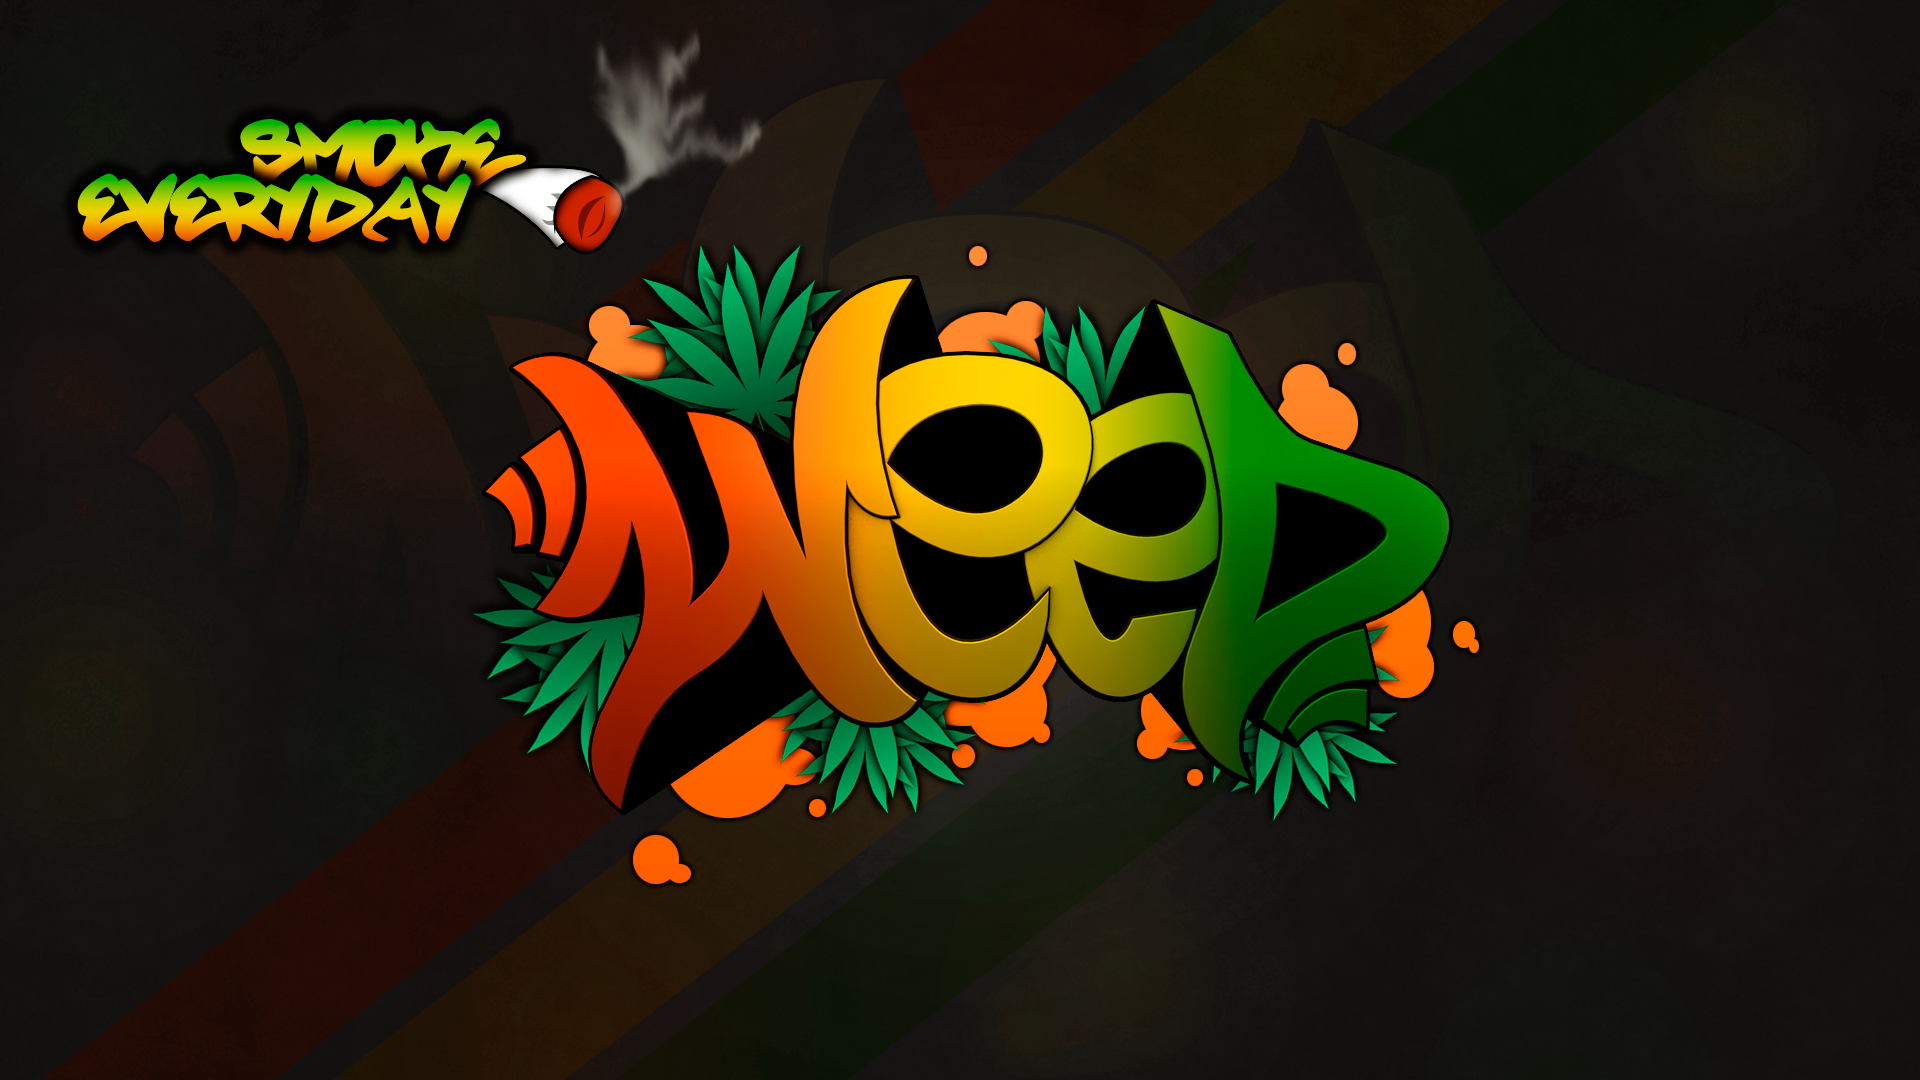 Google themes weed - Image For Weed Posters Wallpaper Free Download 1080p